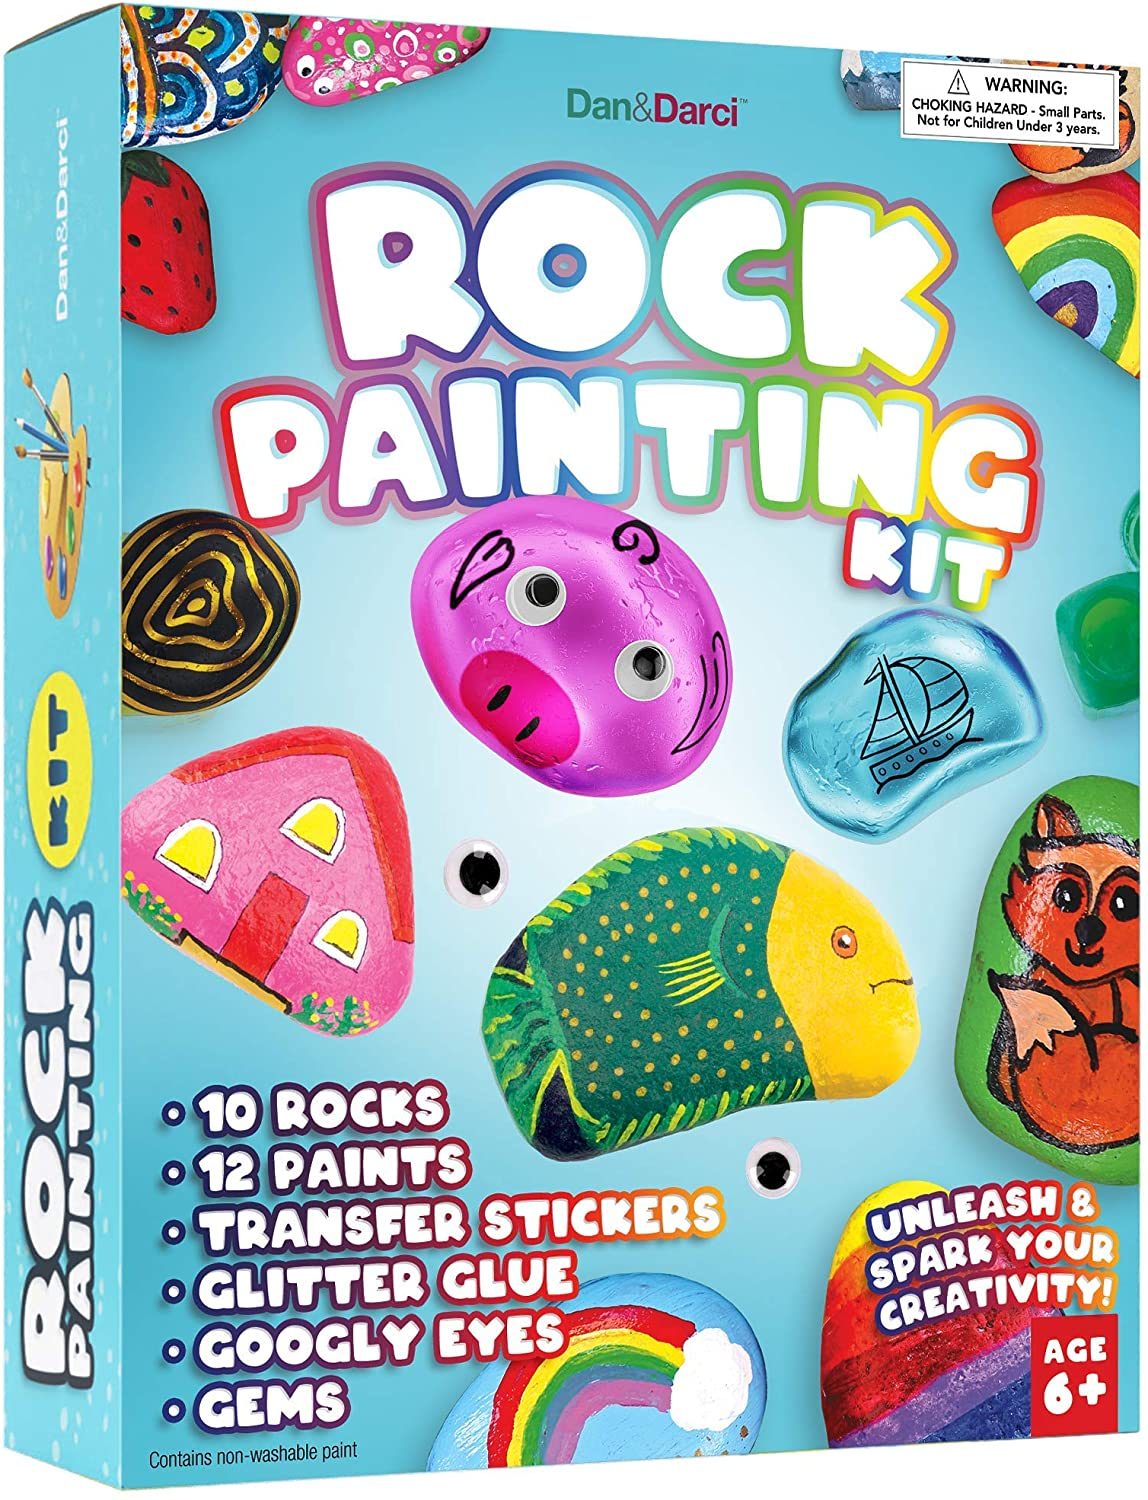 Rock Painting Kits on Sale for $12.97! Should Arrive by Christmas!